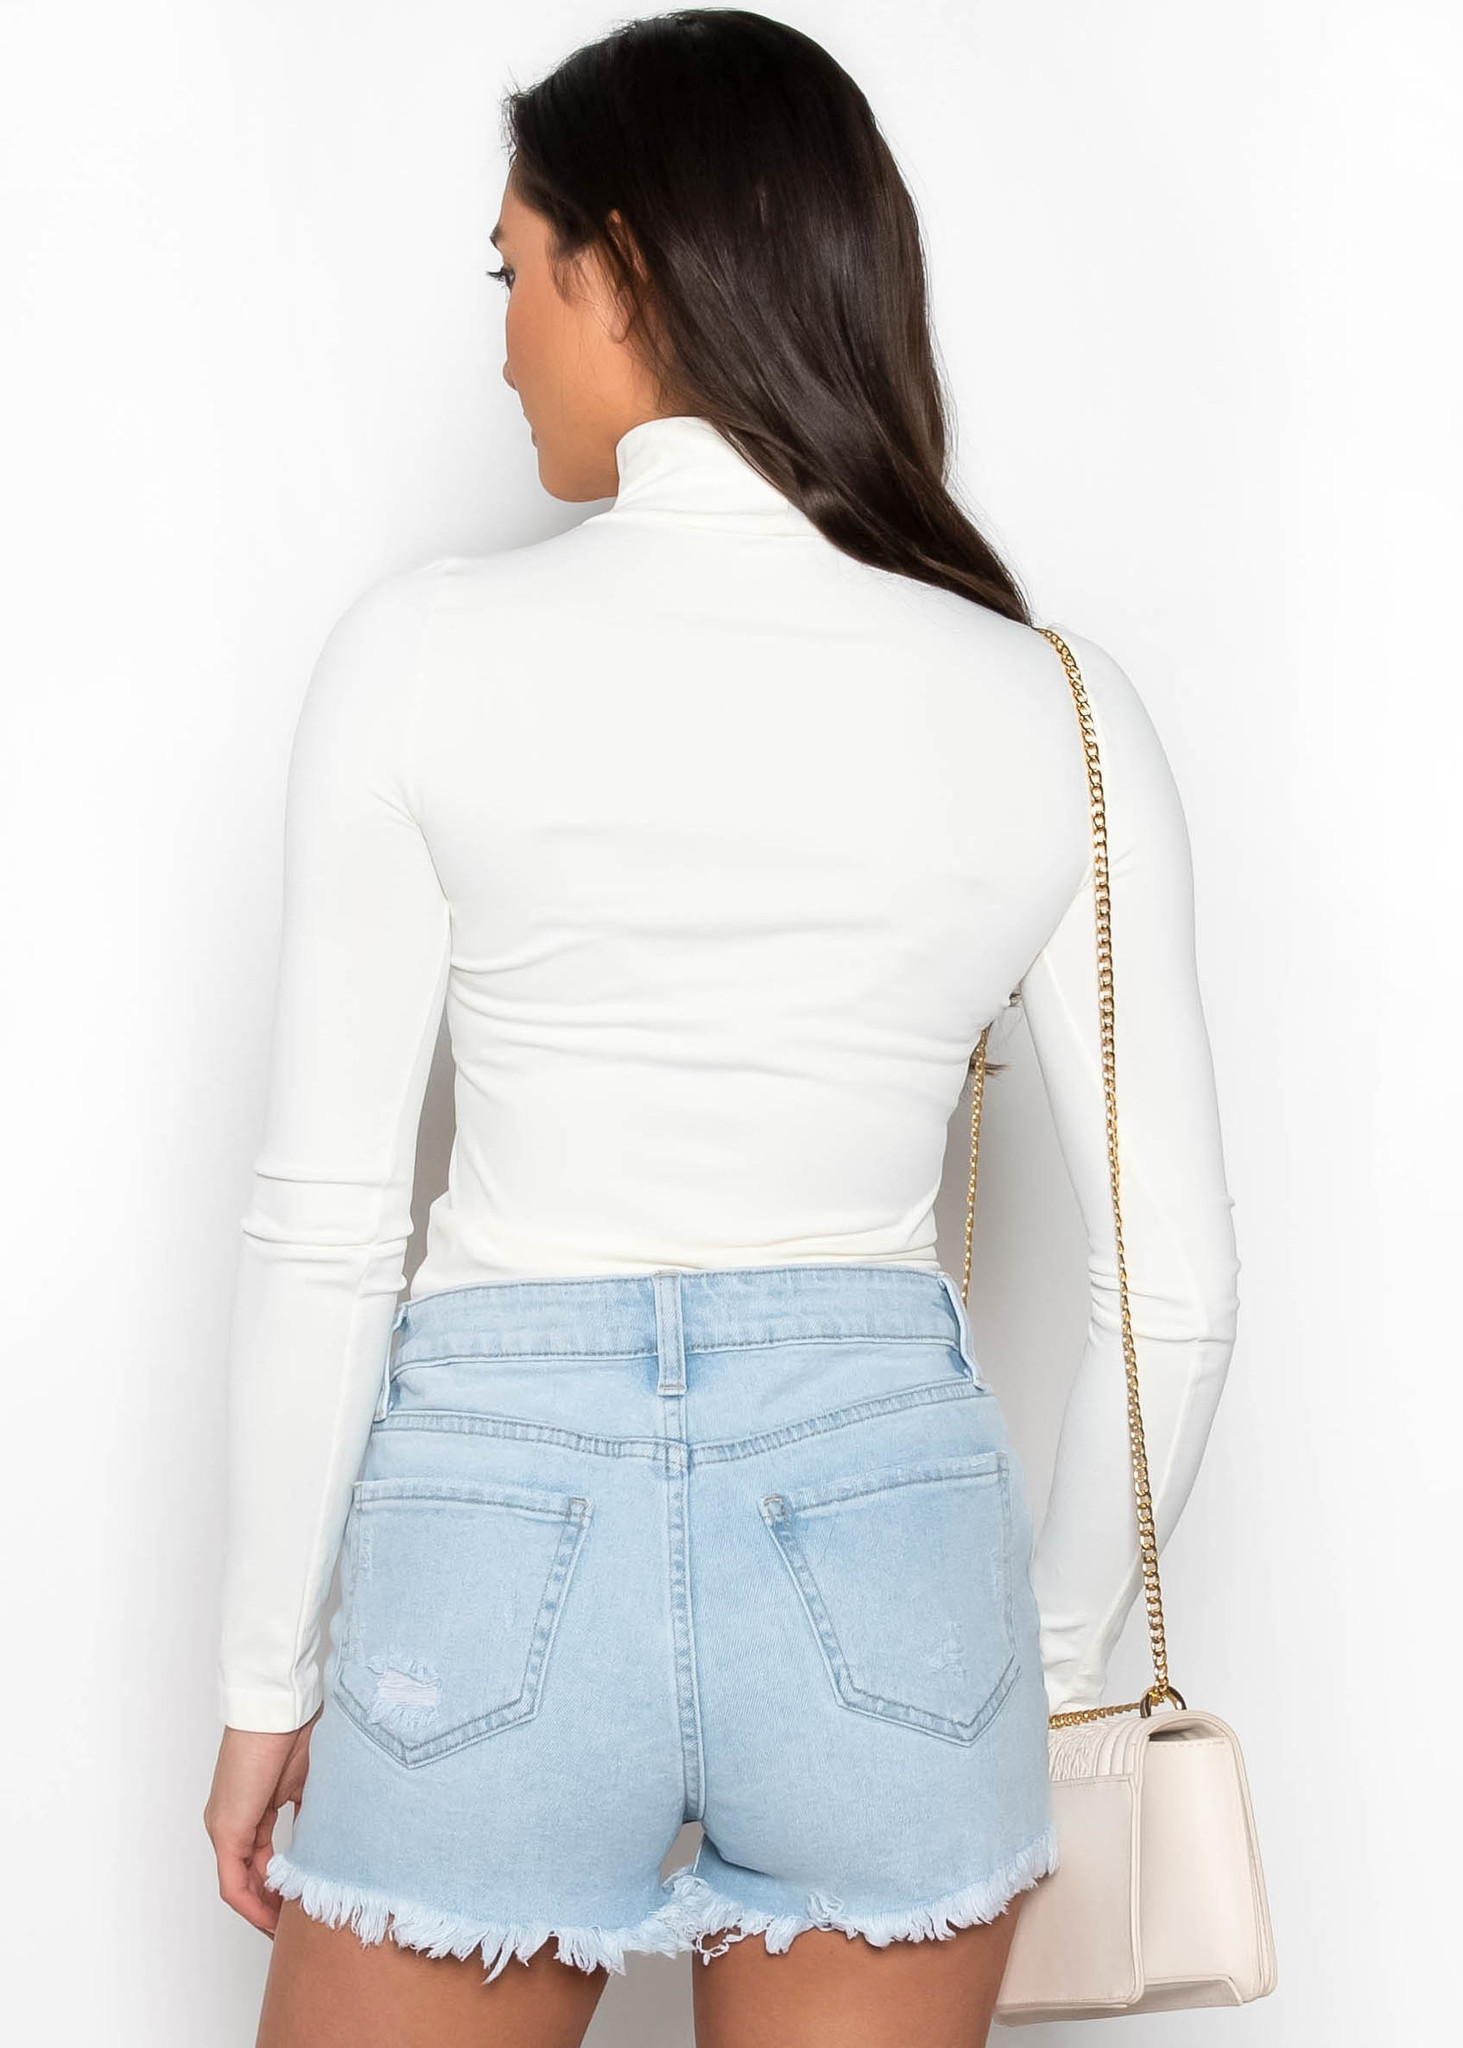 THINK TWICE TURTLENECK TOP - IVORY